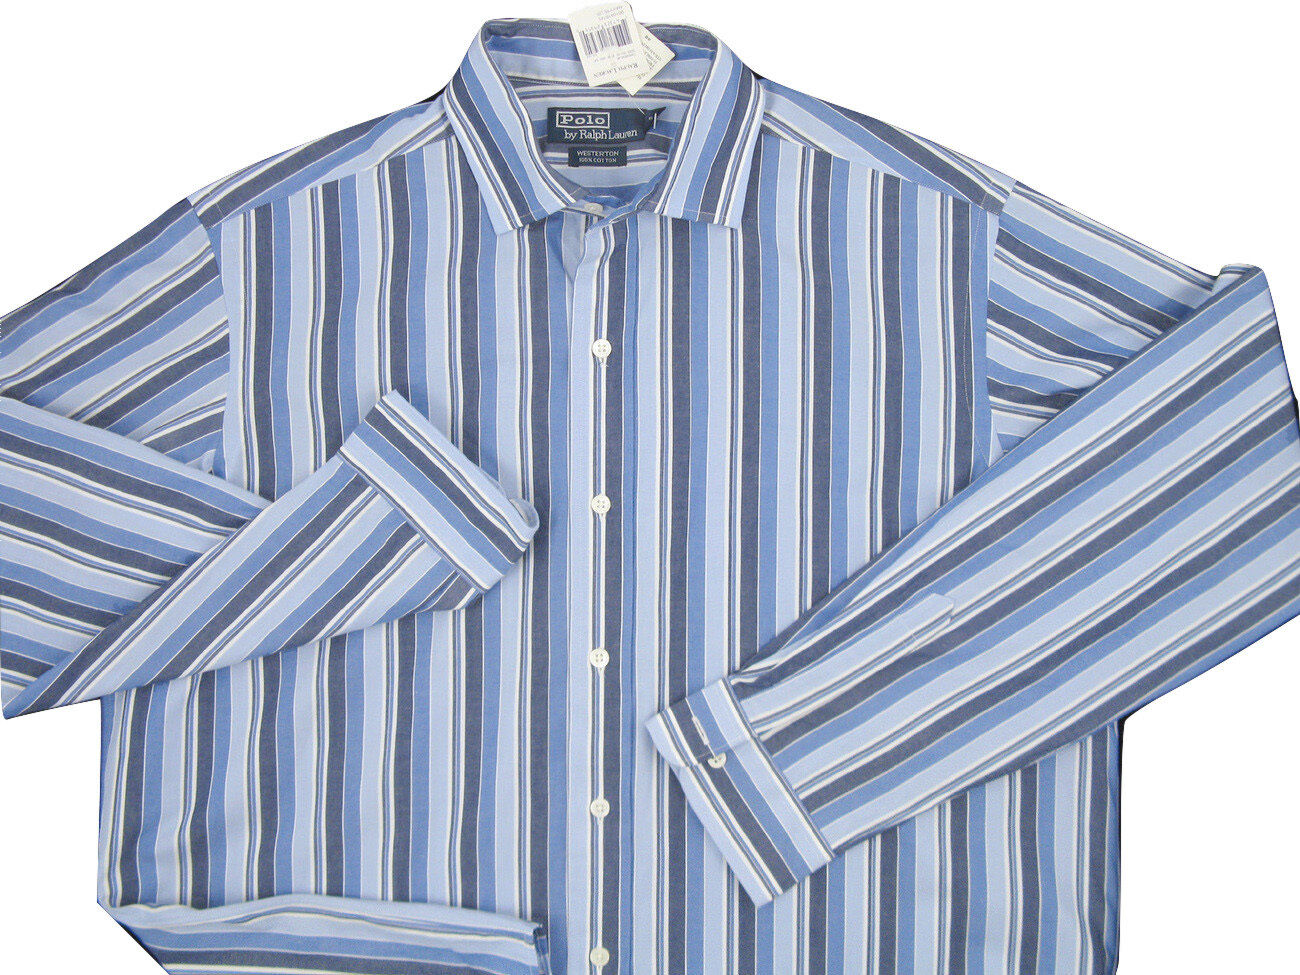 31330178 Polo Ralph Lauren Weathered Stripe Oxford Shirt XL Westerton Style NEW  nynjsy2140-Casual Shirts & Tops